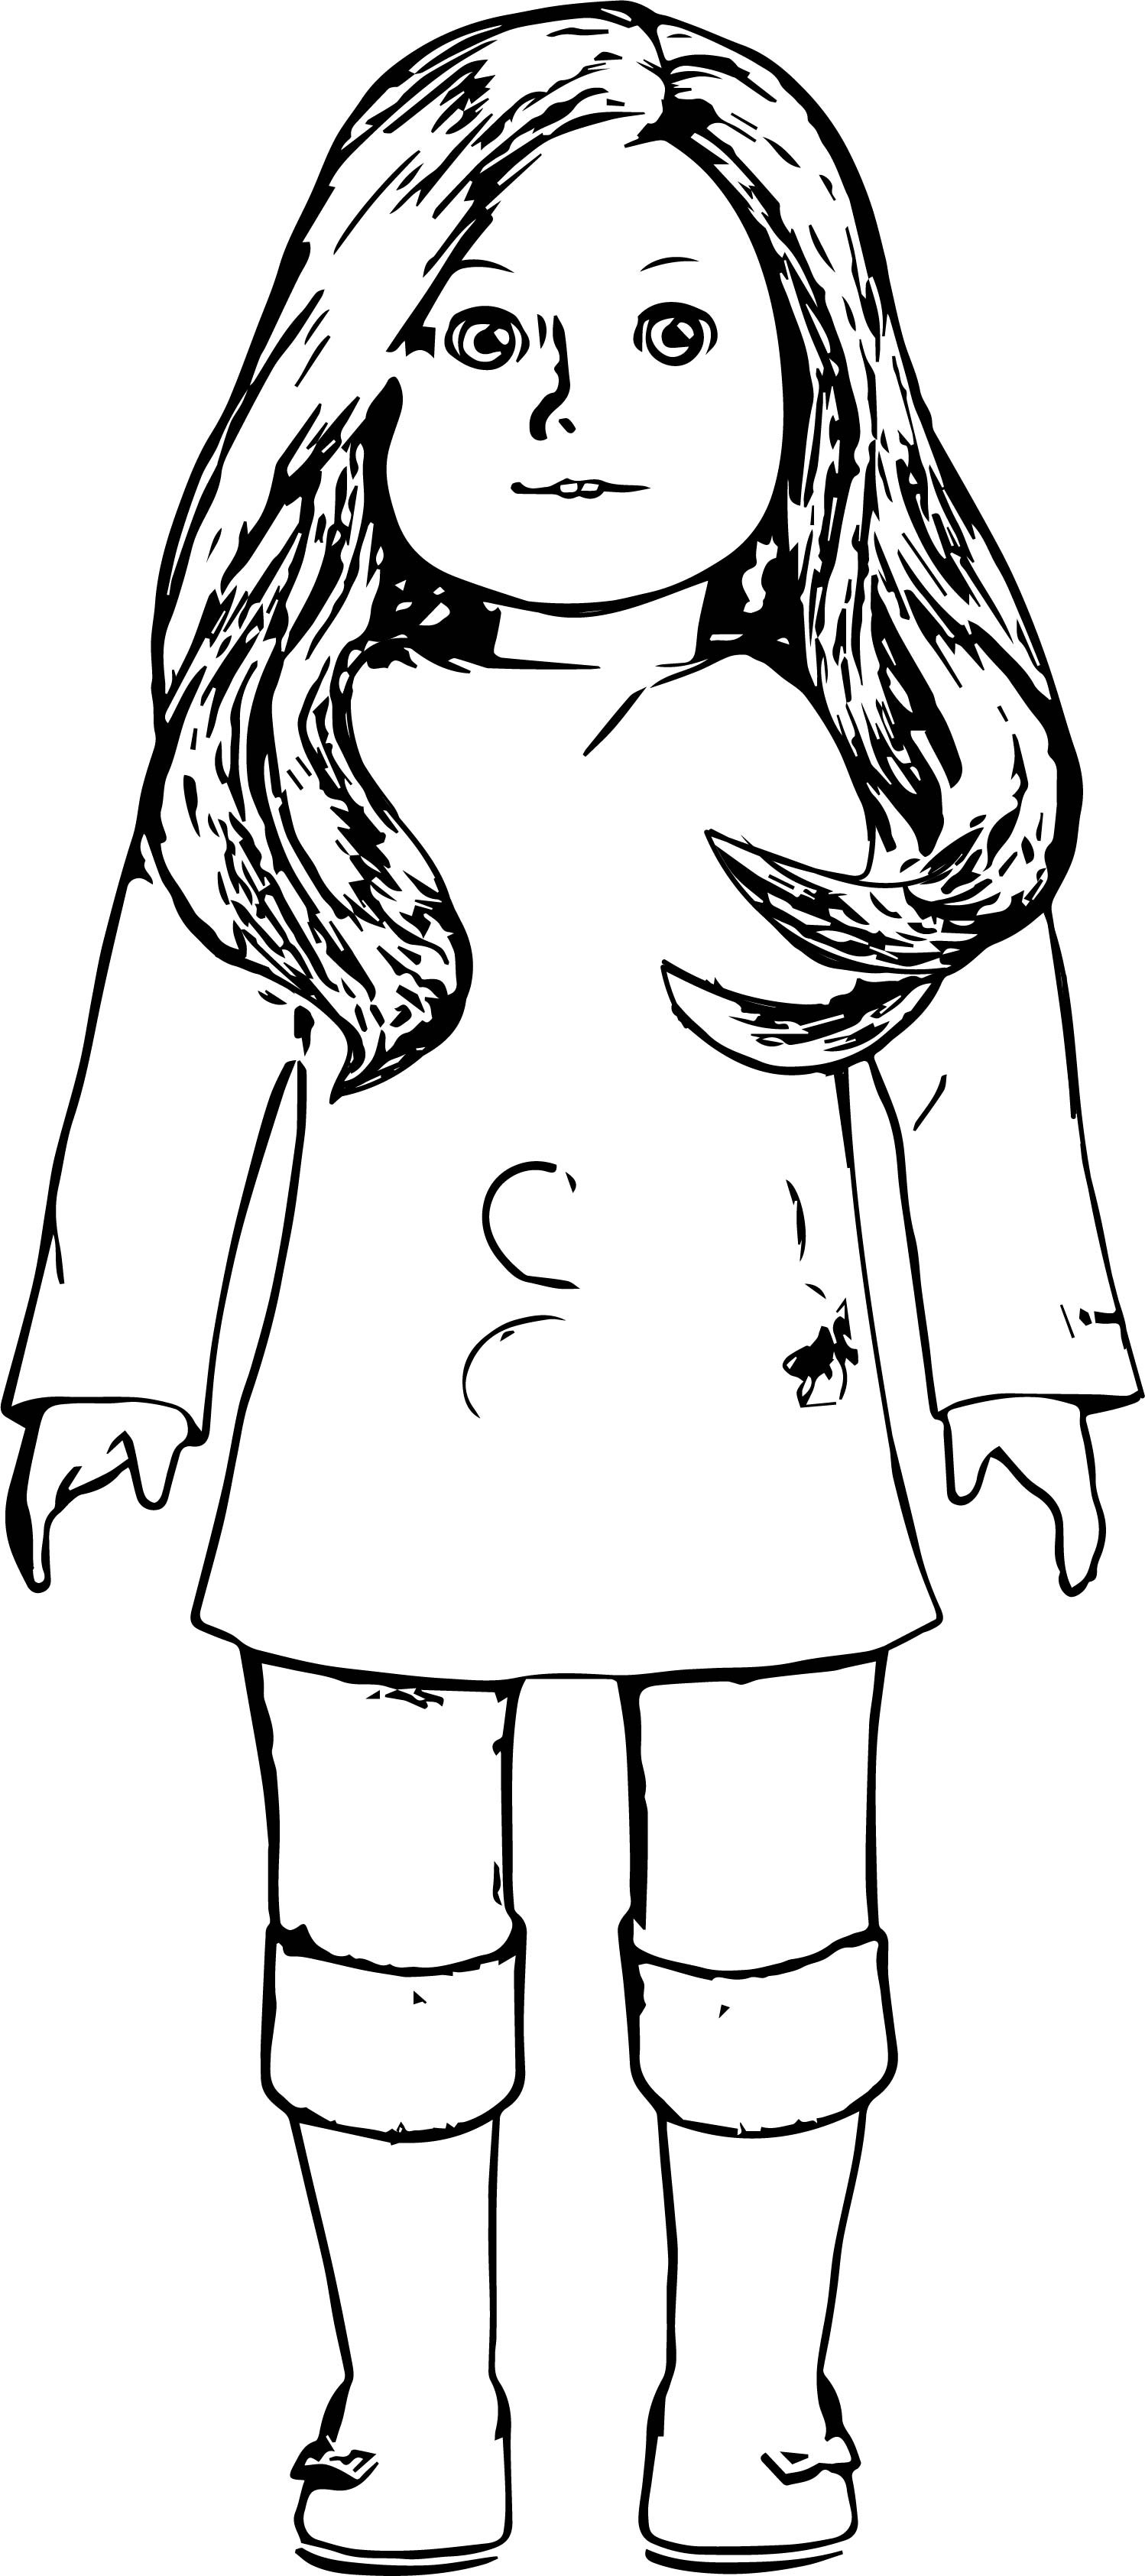 pictures of american girl dolls to color american girl coloring pages best coloring pages for kids girl american dolls of pictures color to